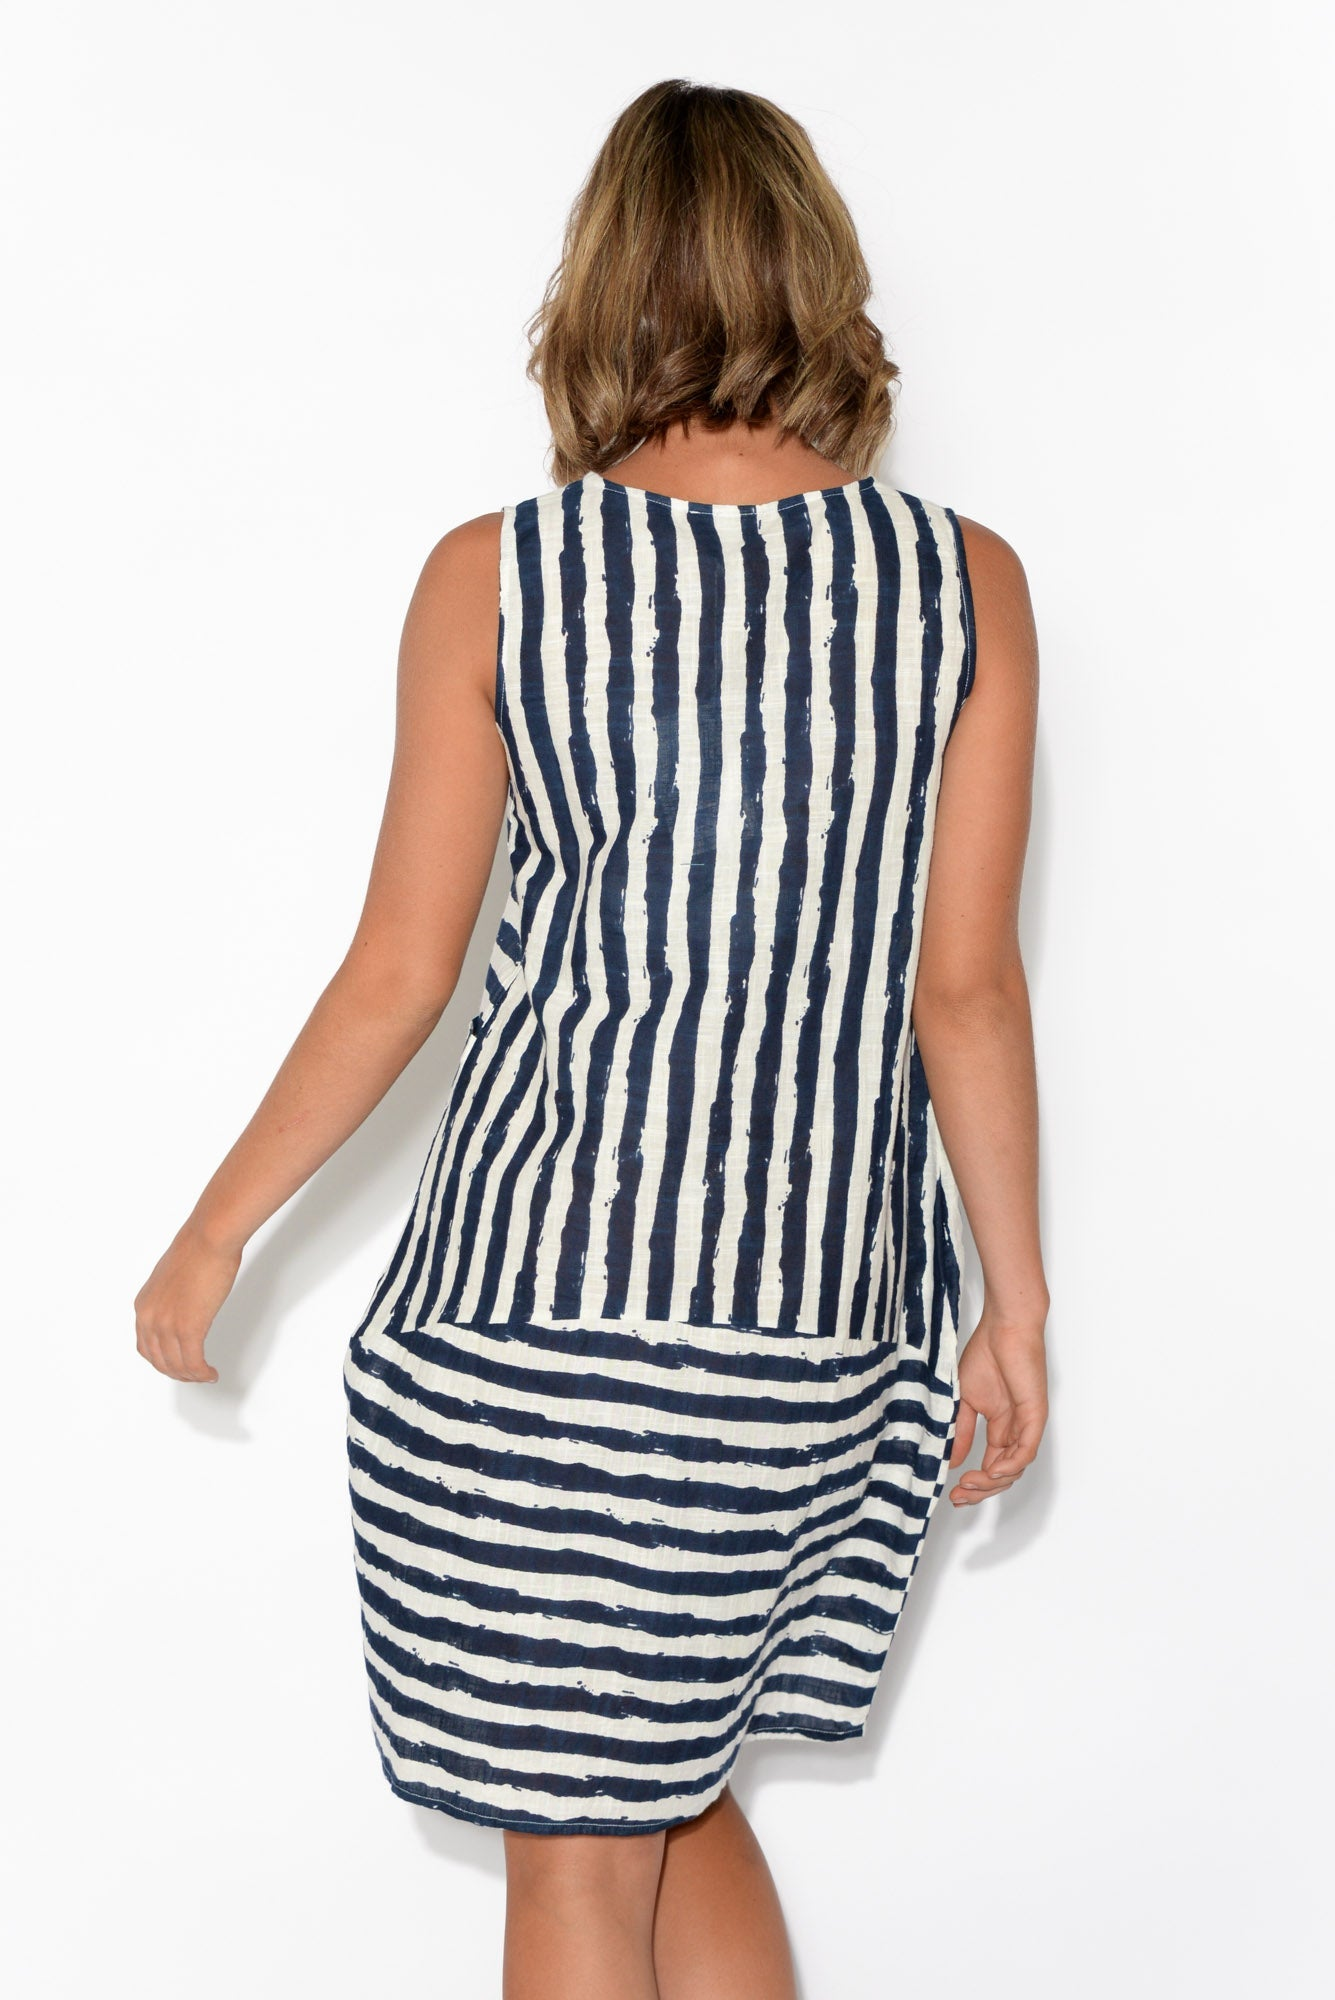 Emilia Sleeveless Navy Stripe Dress